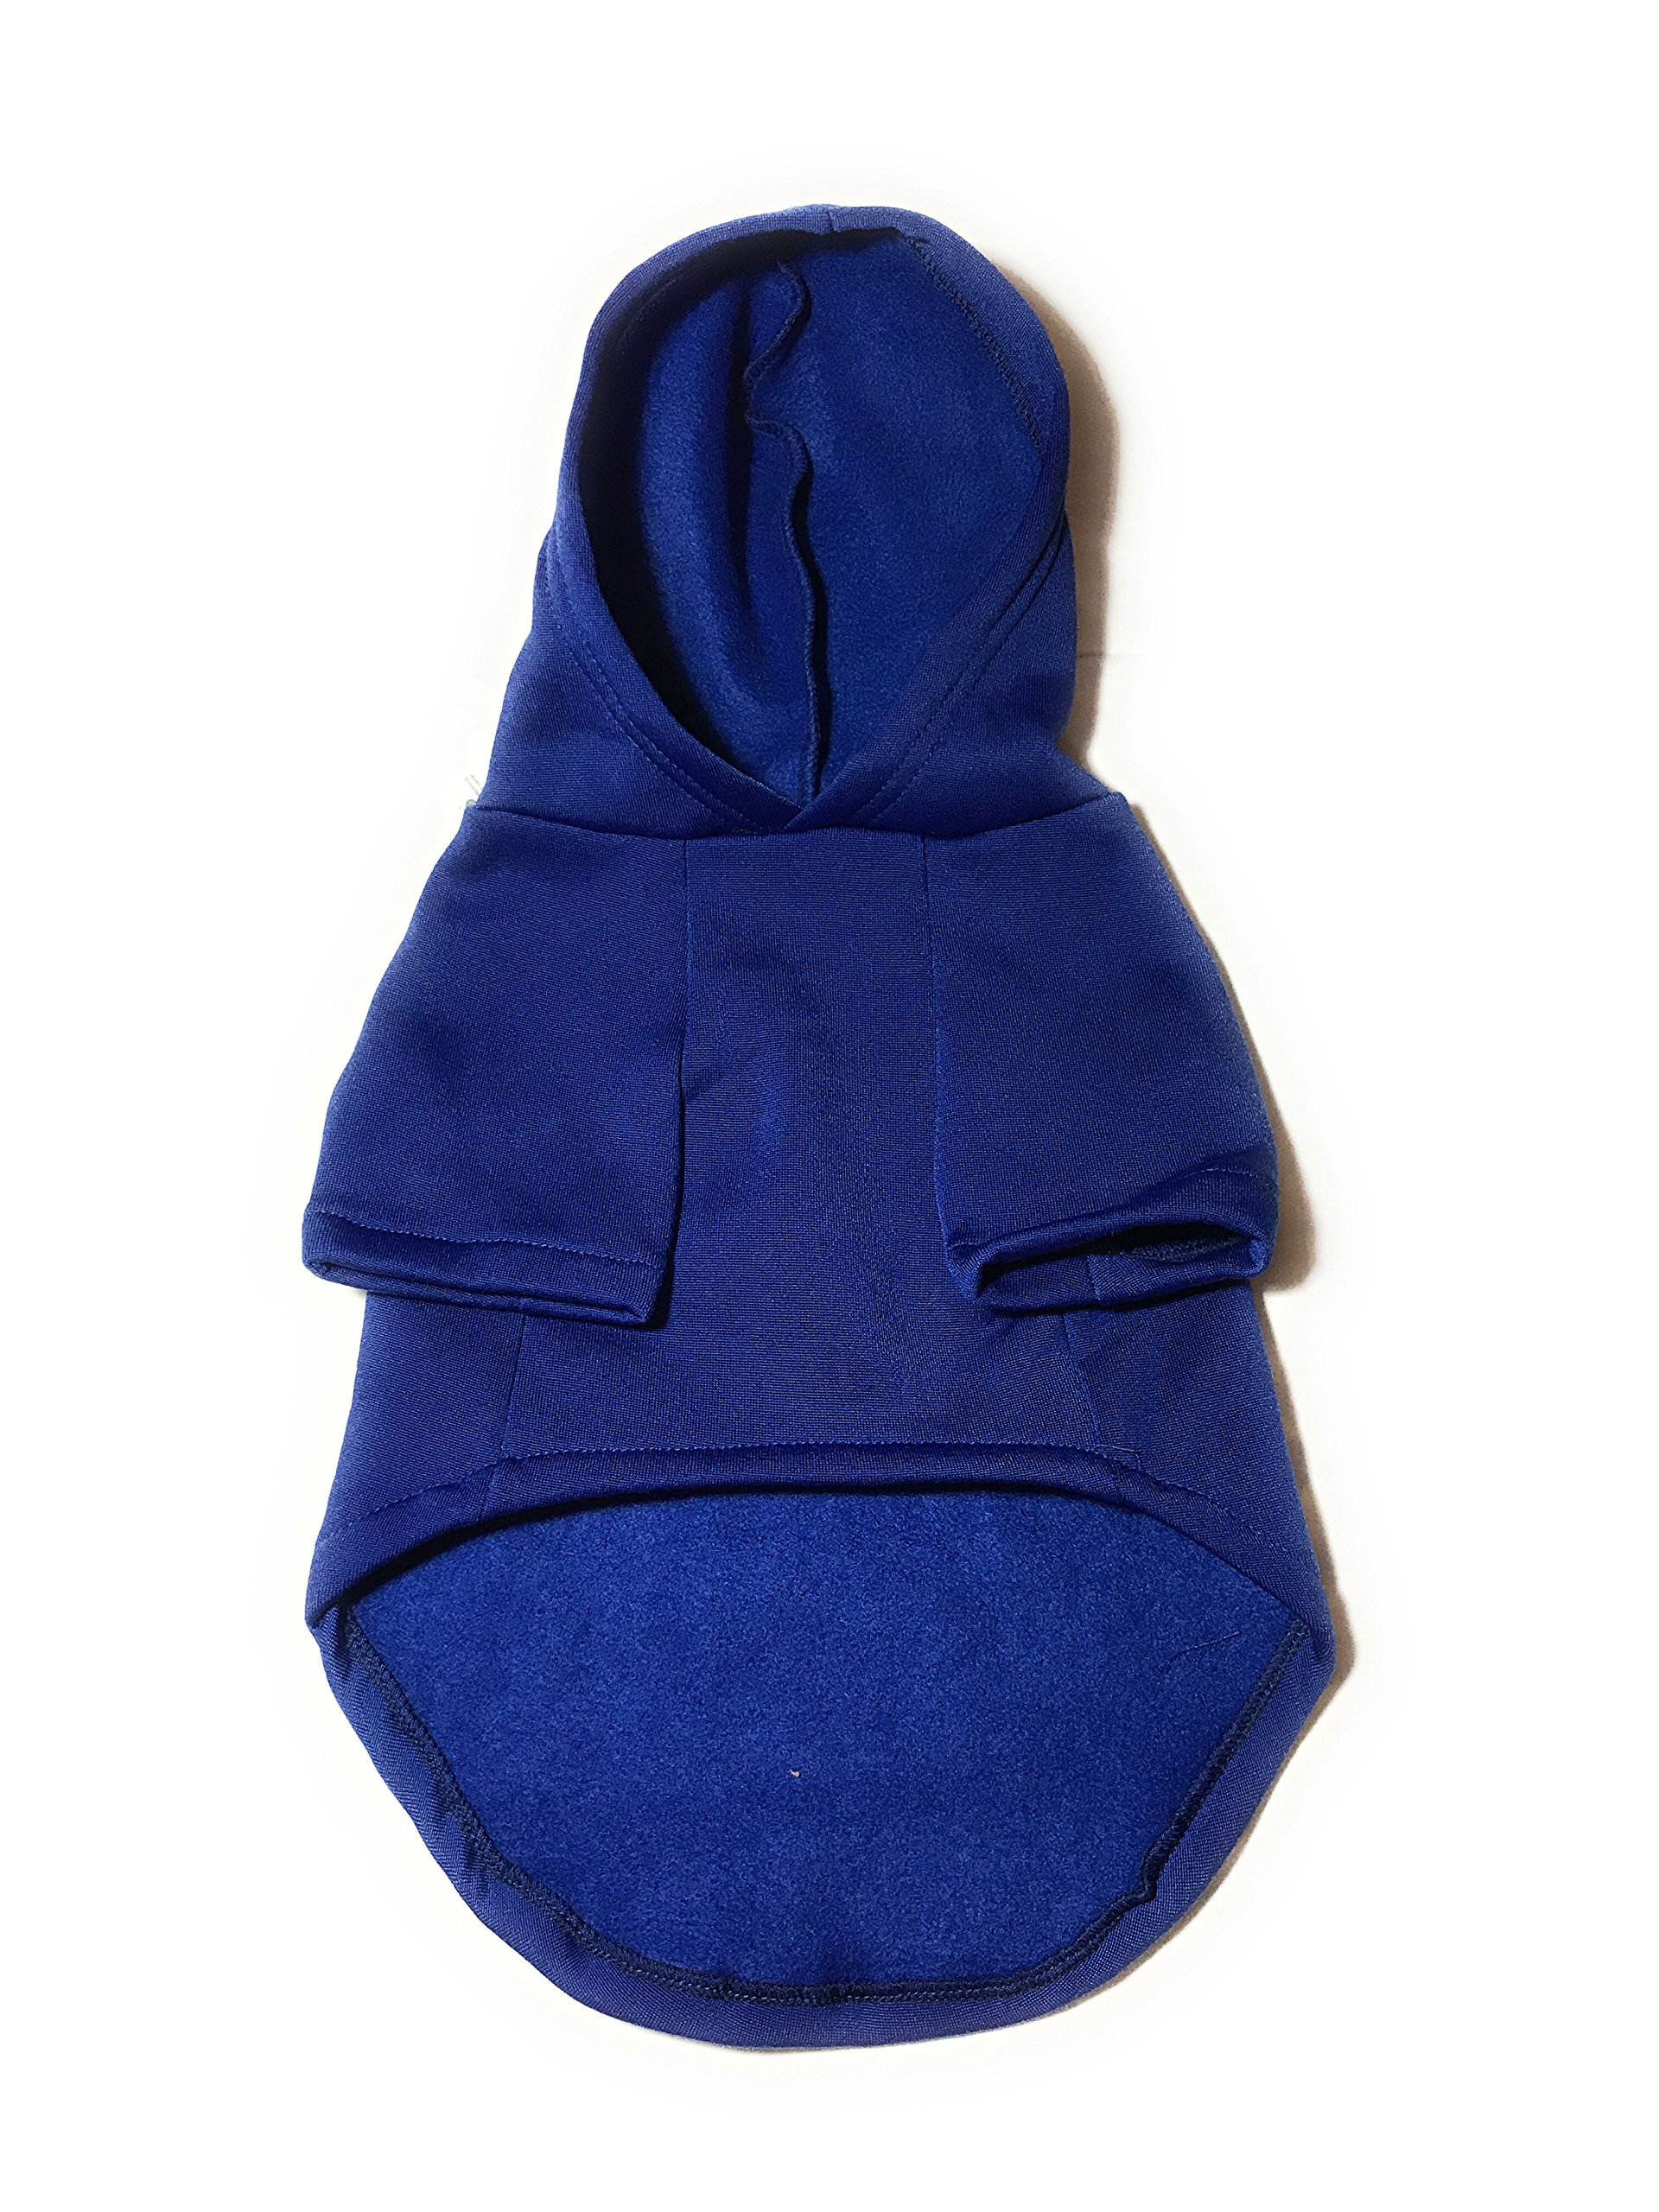 Dog or Puppy Sweater Hoodie ´Party Animal´ Blue and Silver for Large or Extra Large Pets XL size/ Extra Large Fashion and Funny Hoodie Shirt Petmont Brand For Boys Or Girls by Petmont (Image #4)